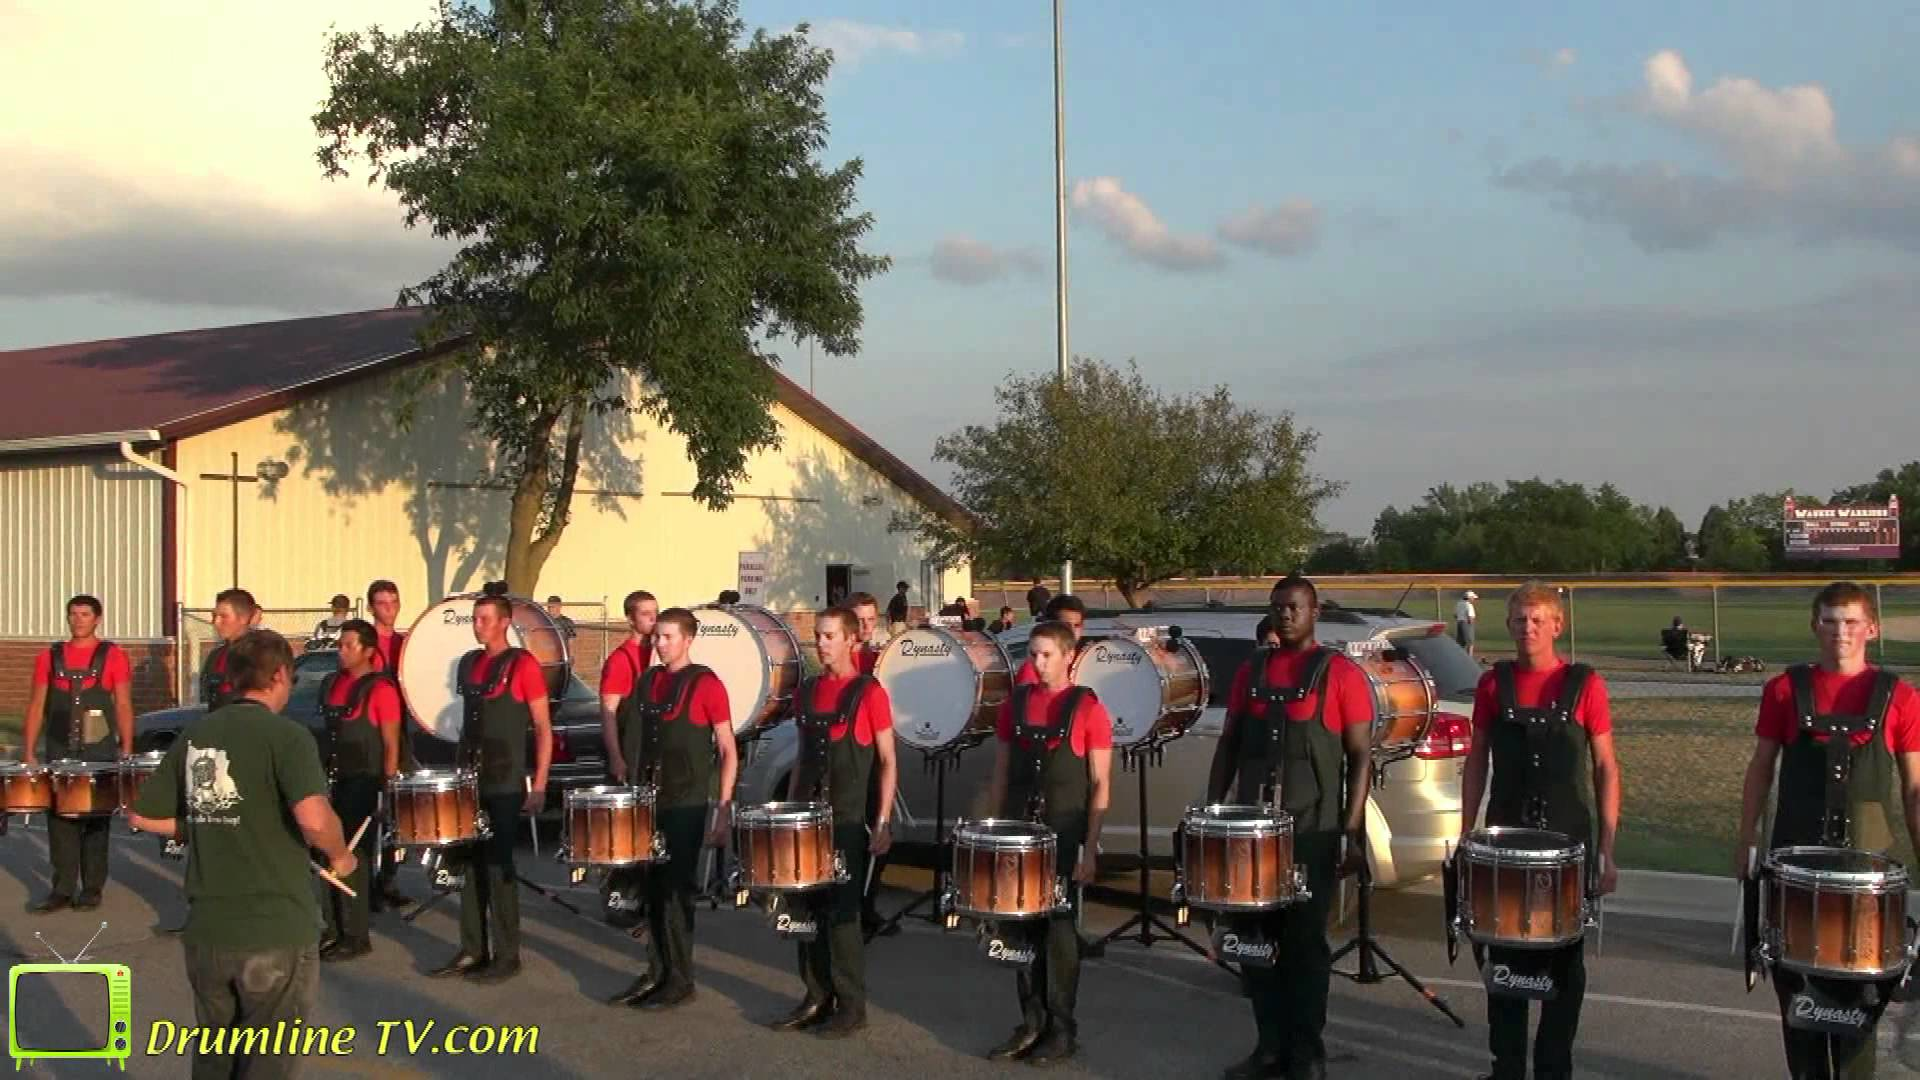 Santa Clara Vanguard 2012 Drumline – Celebration in Brass Show – Waukee, Iowa 7-10-12